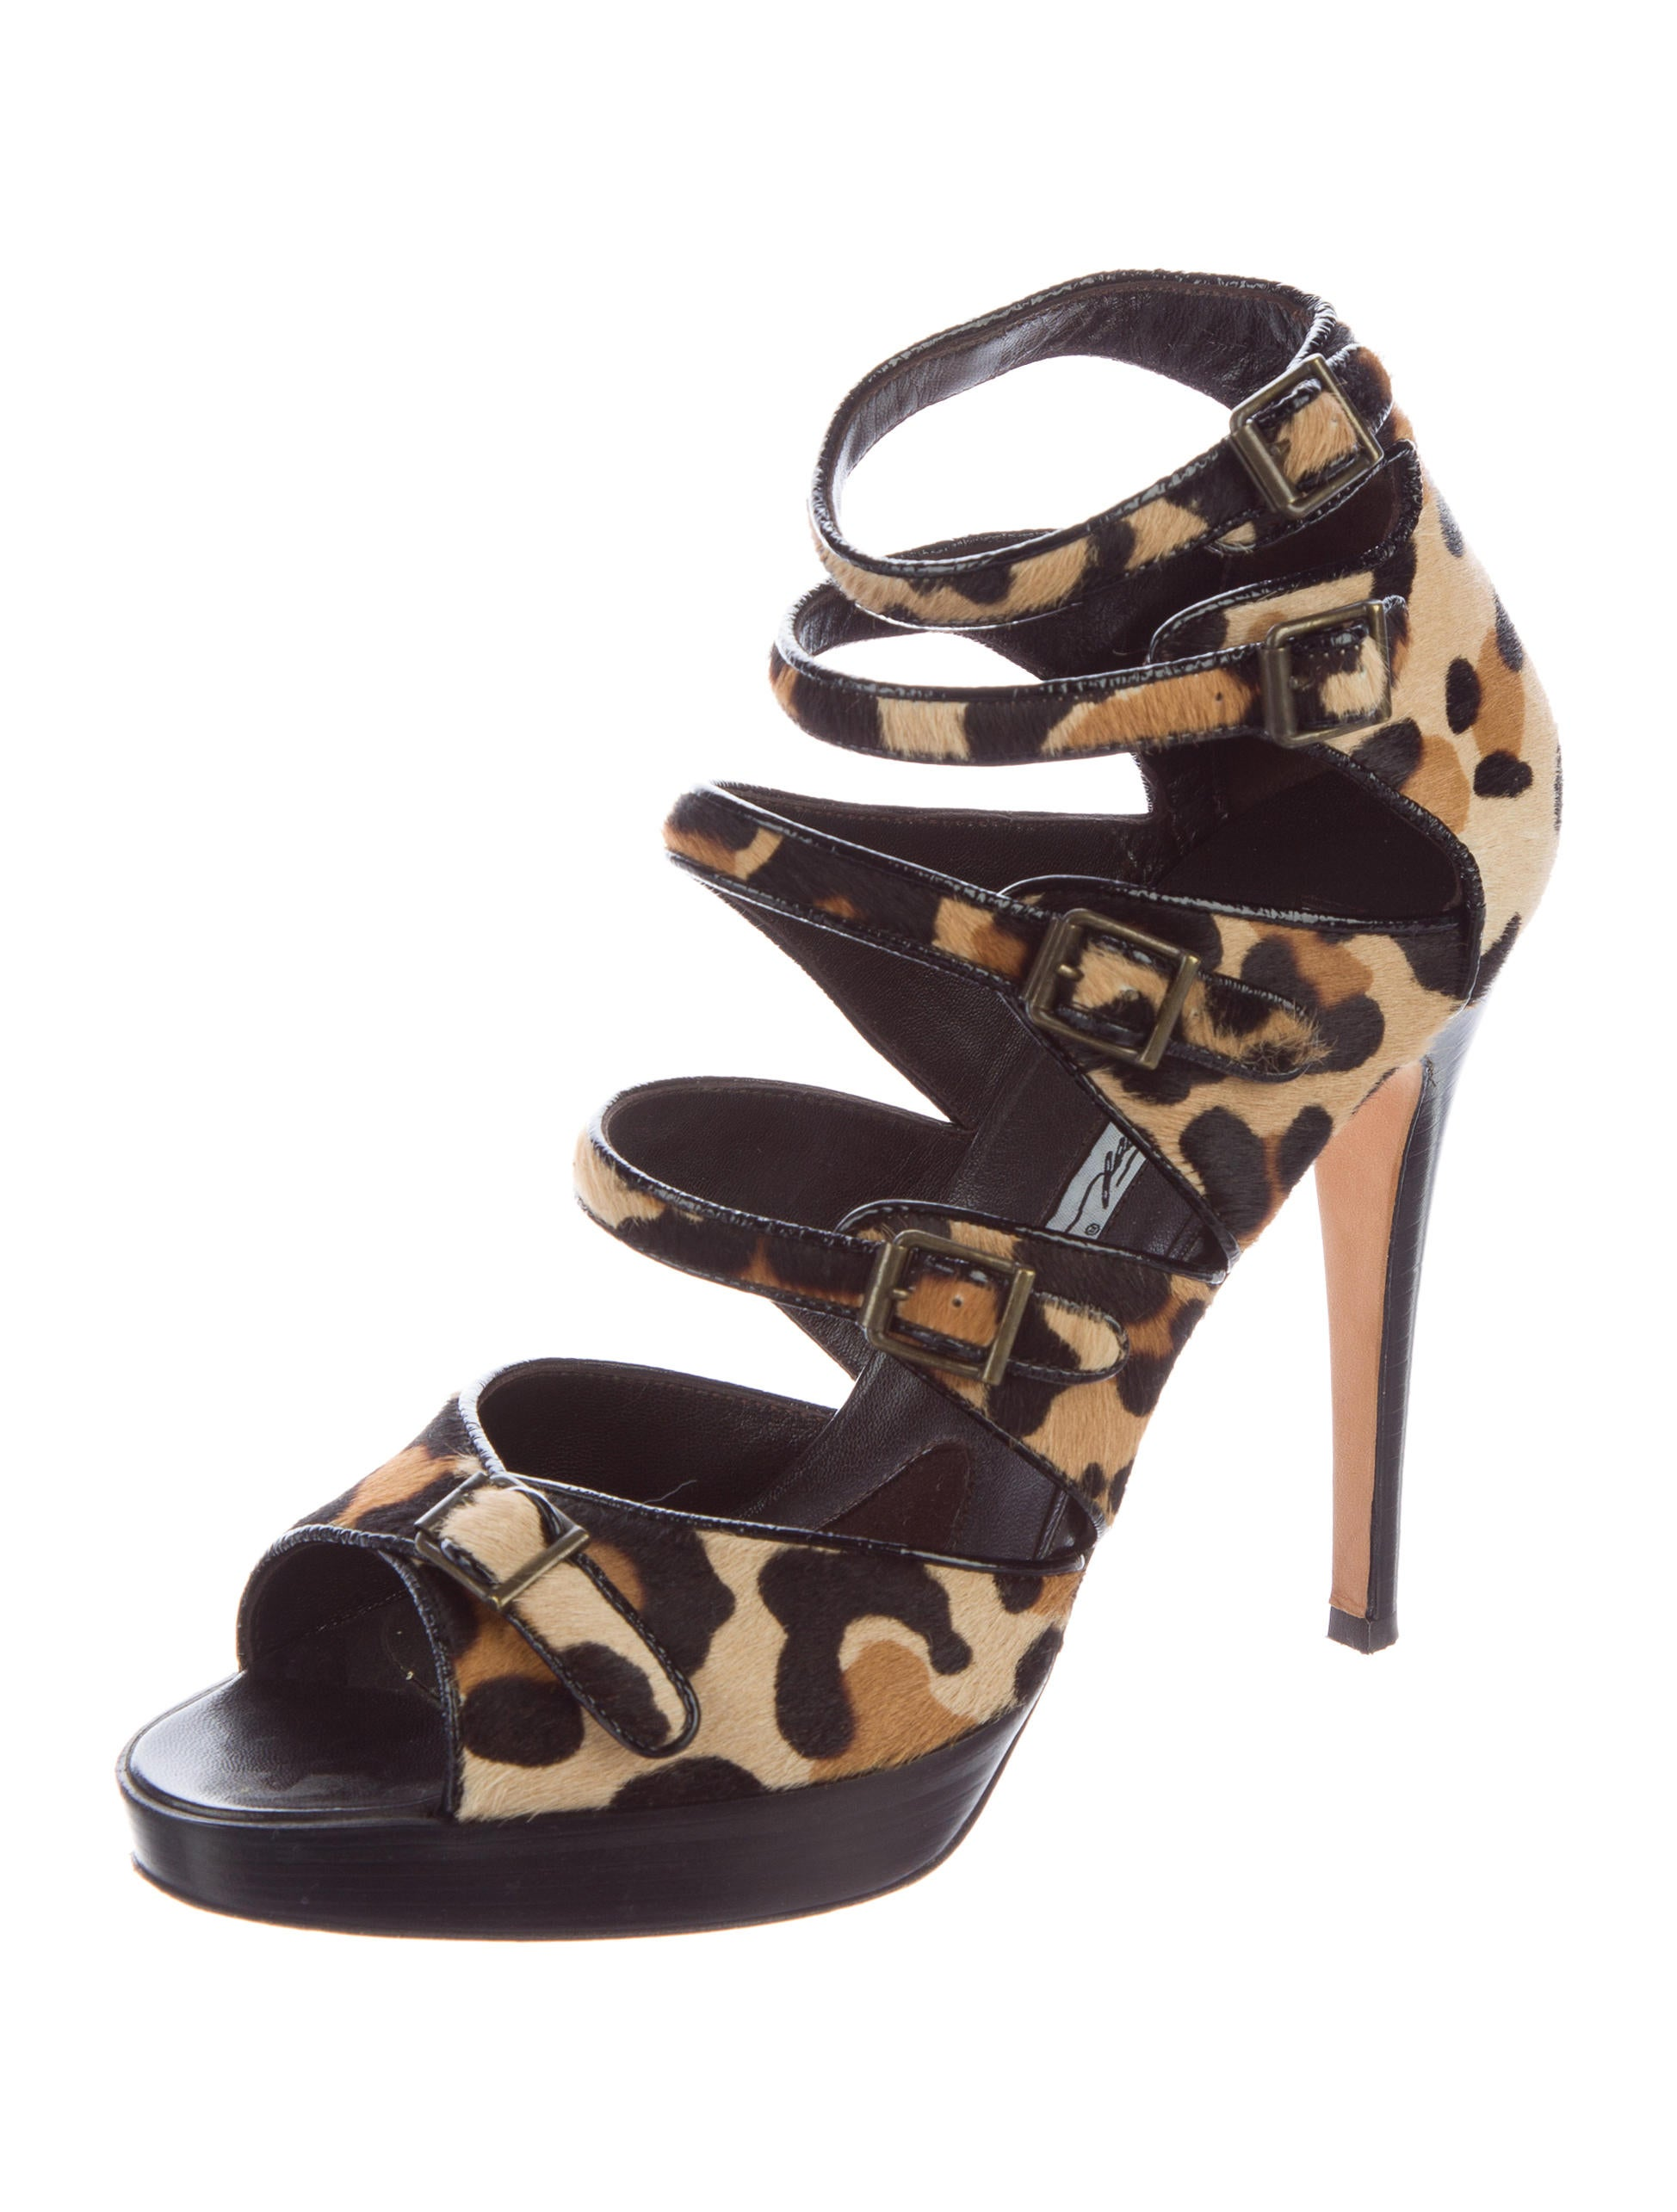 Brian Atwood Ponyhair Caged Sandals discount really cheap for nice outlet excellent fyaYKx